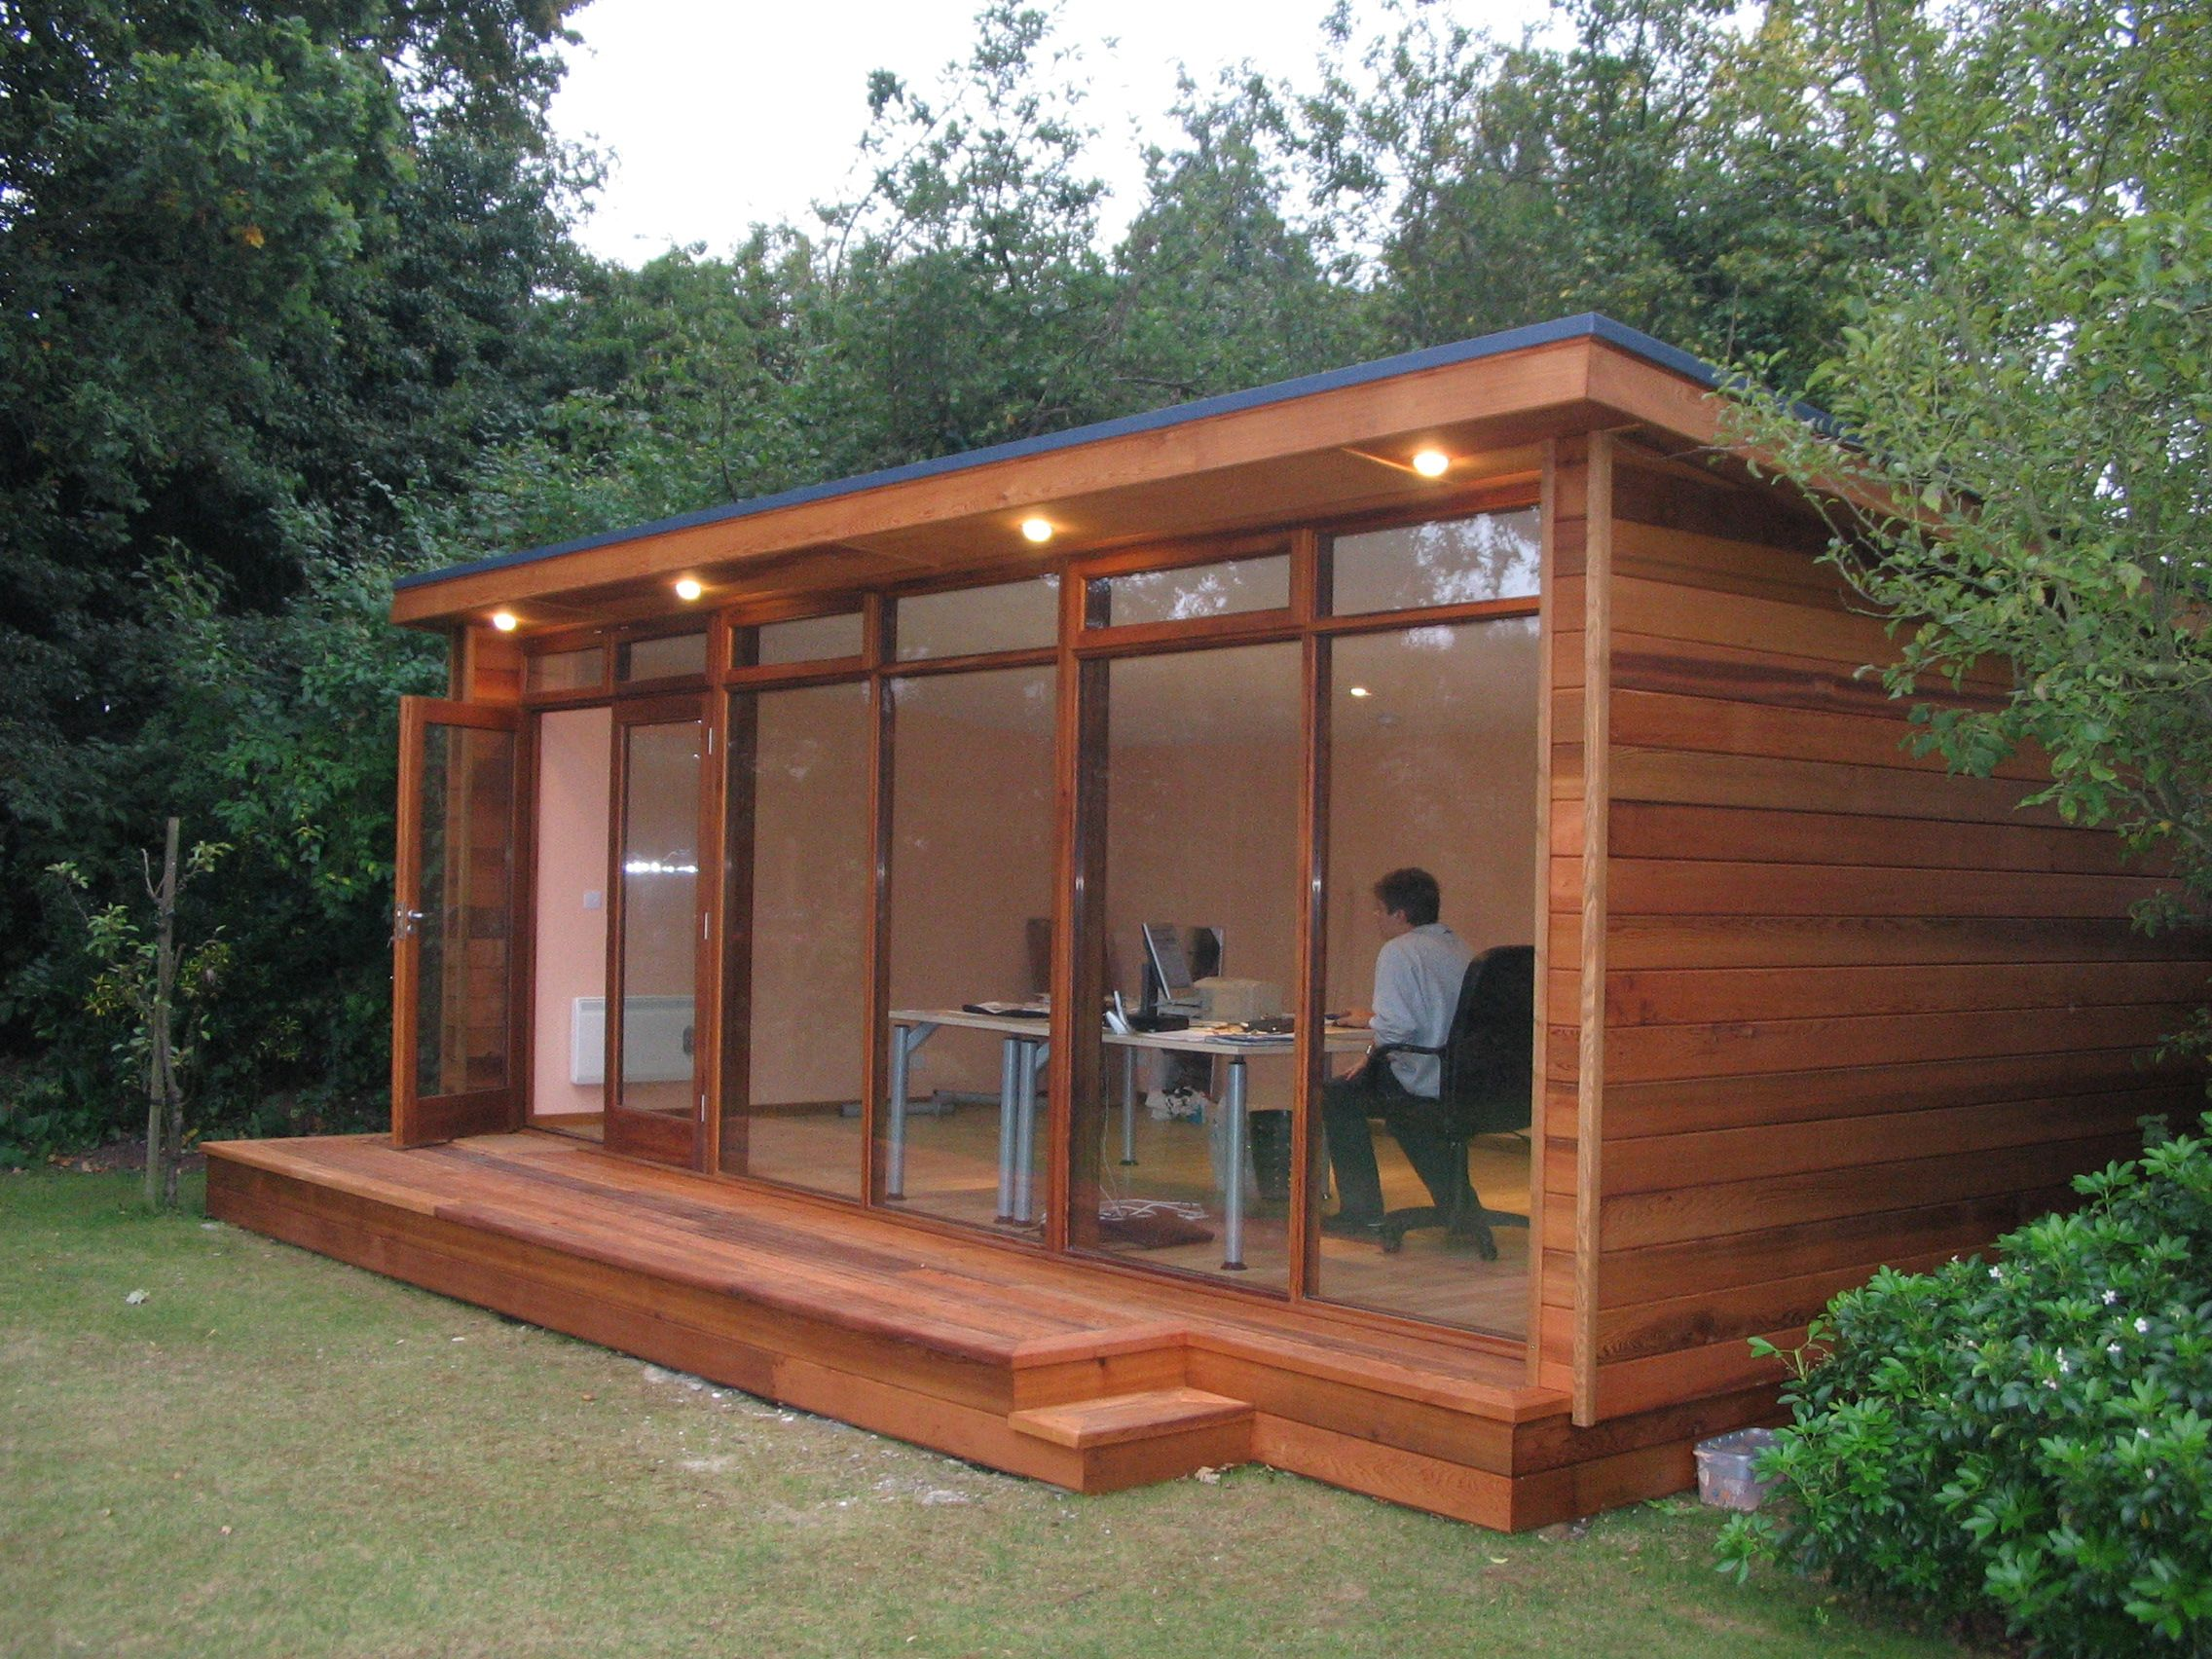 garden office ideas. httpswwwgooglecomsearchqu003dgarden office garden ideas r